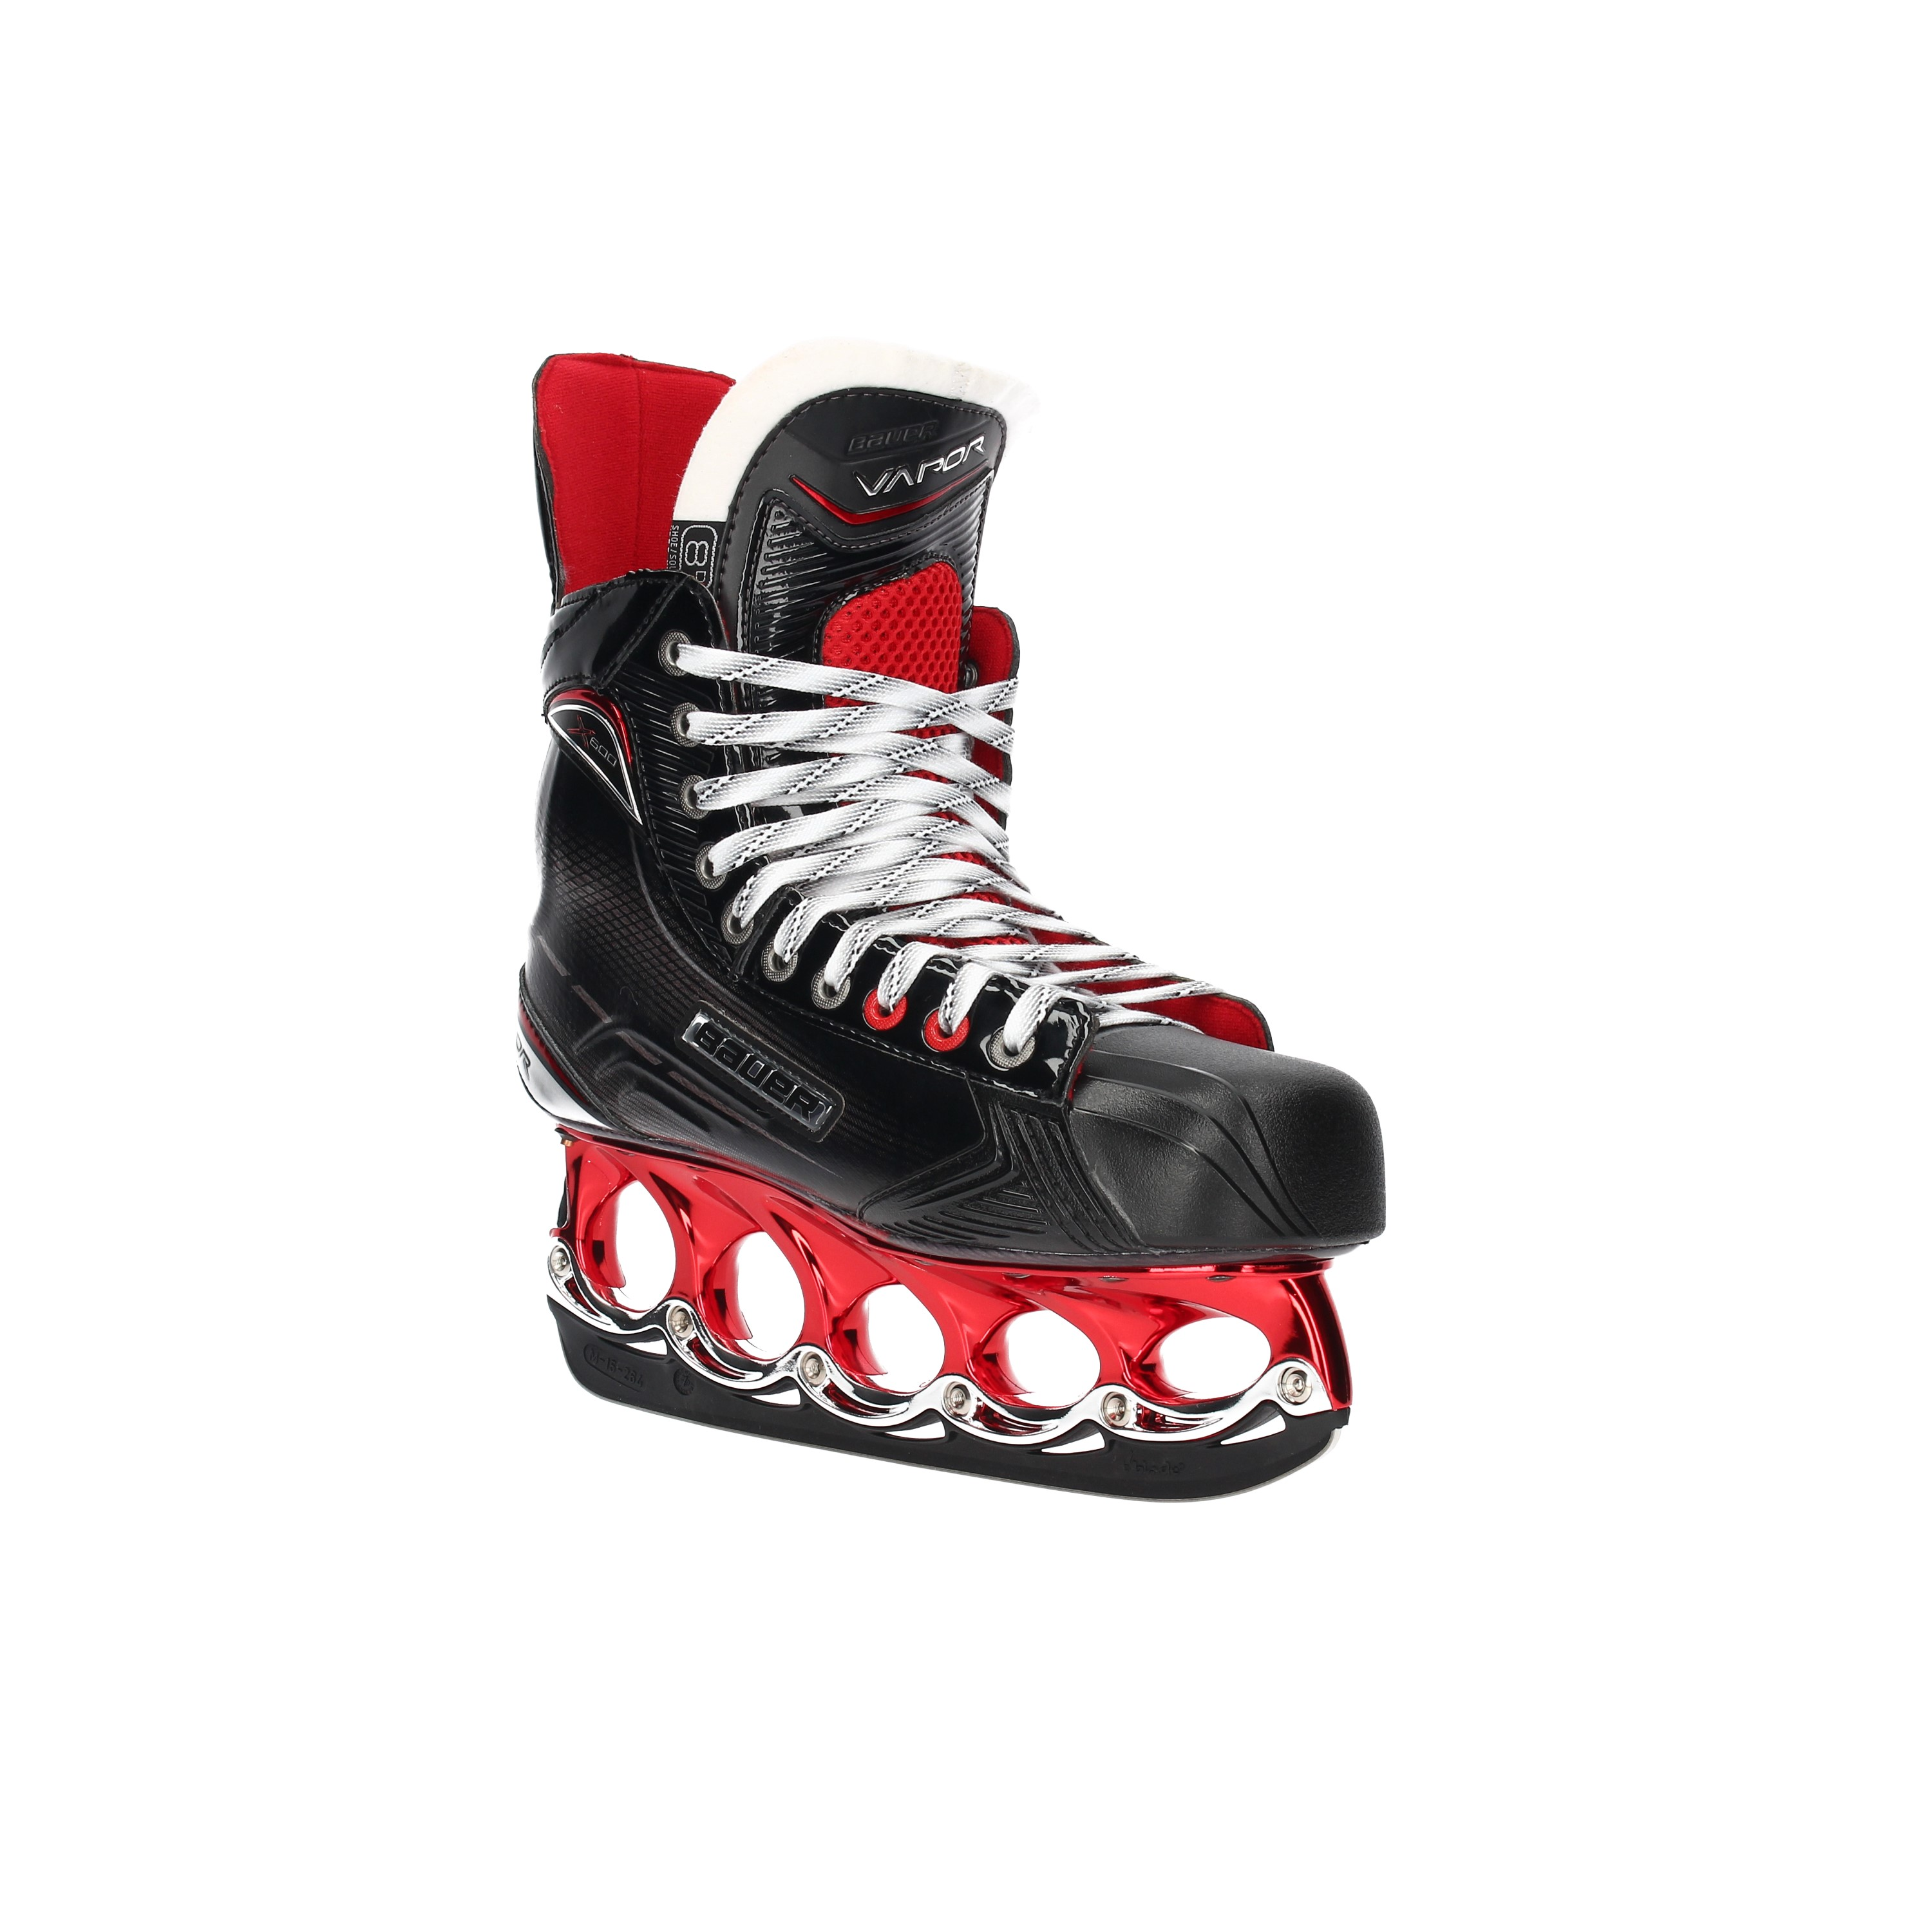 863782ccd16 ... Preview  Bauer Vapor X600 t-blade Skate Red Edition - Demo Model ...